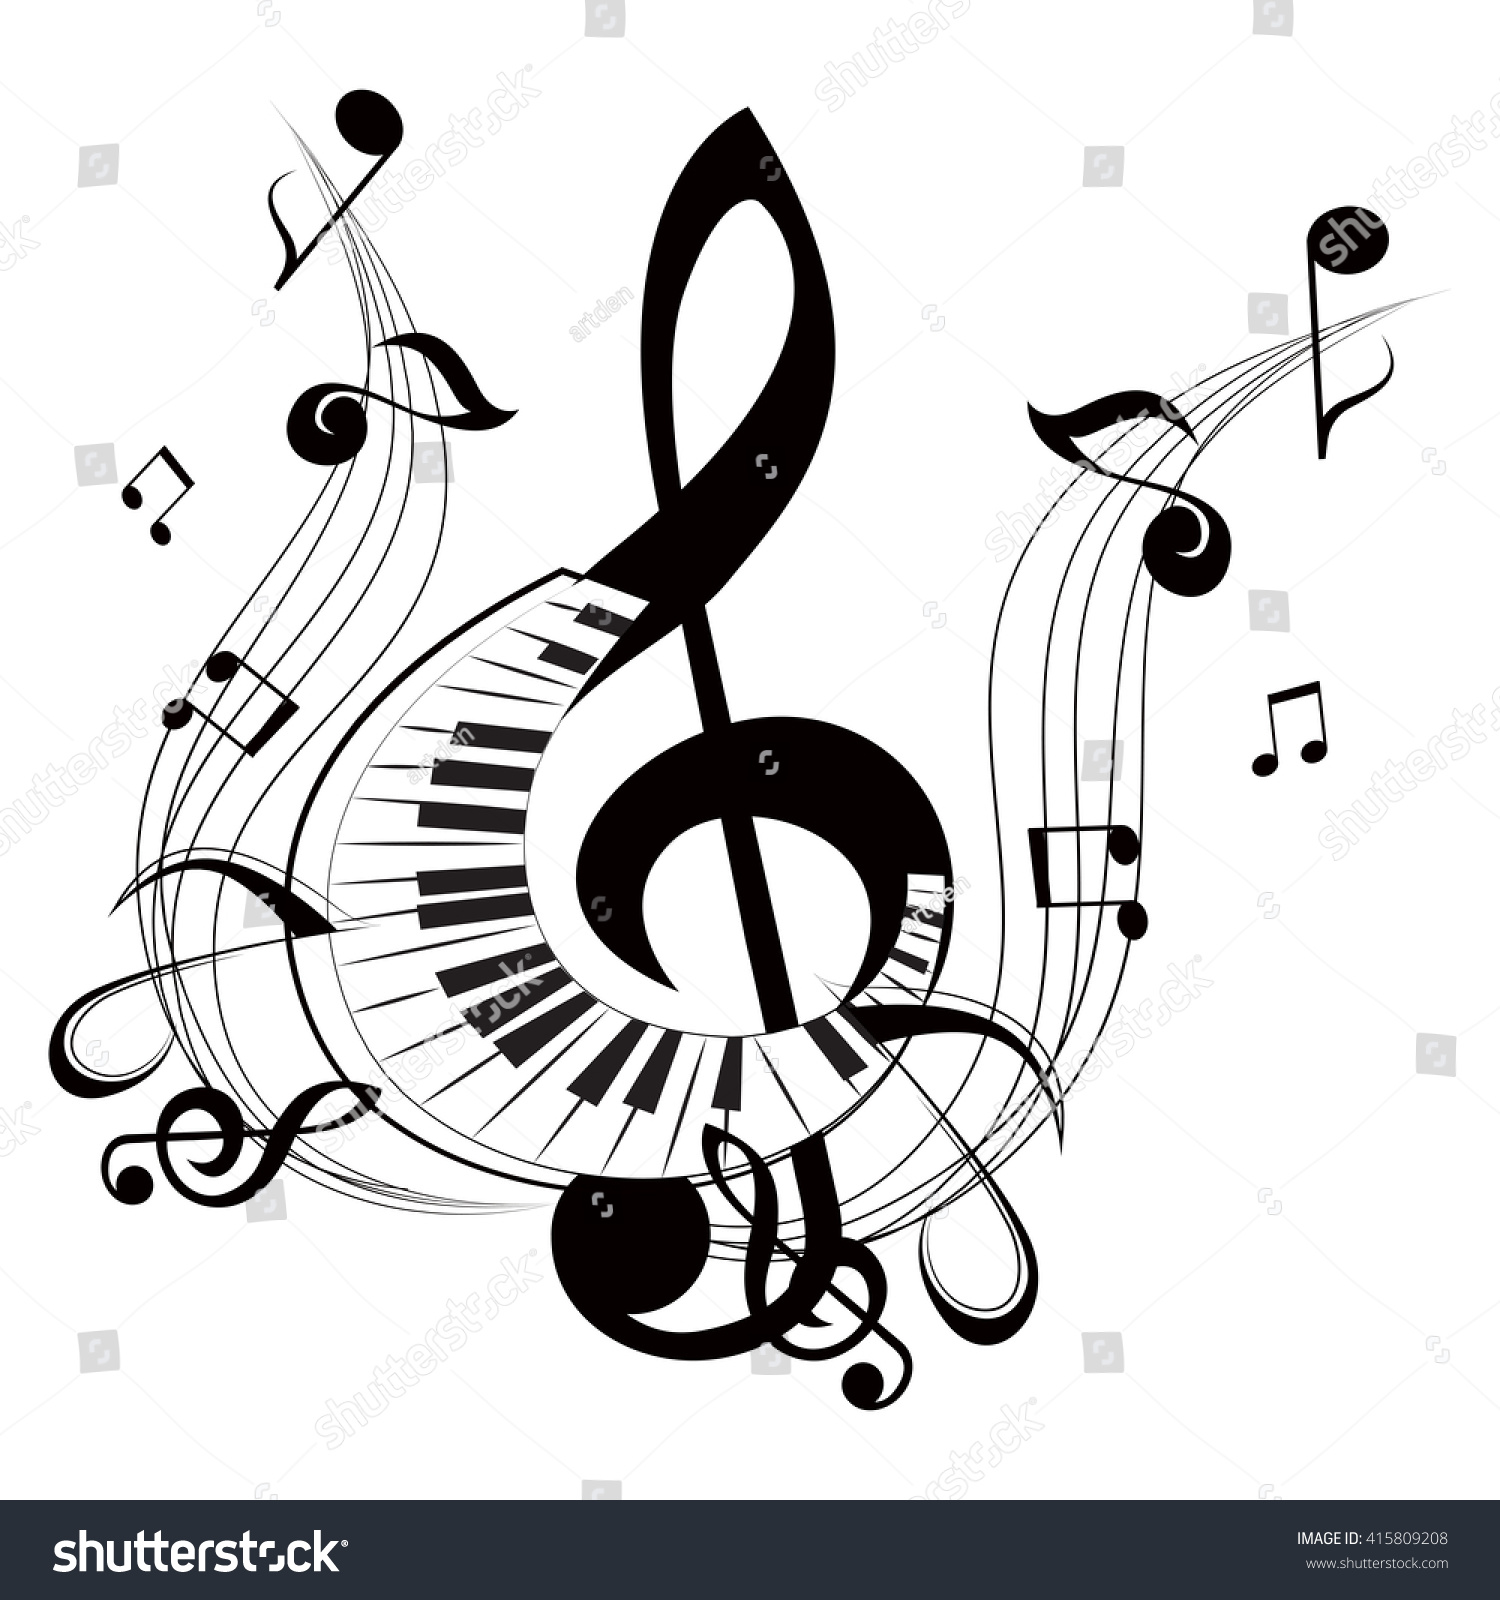 Creative Flat Designs Music Musical Symbols Stock Vector 2018